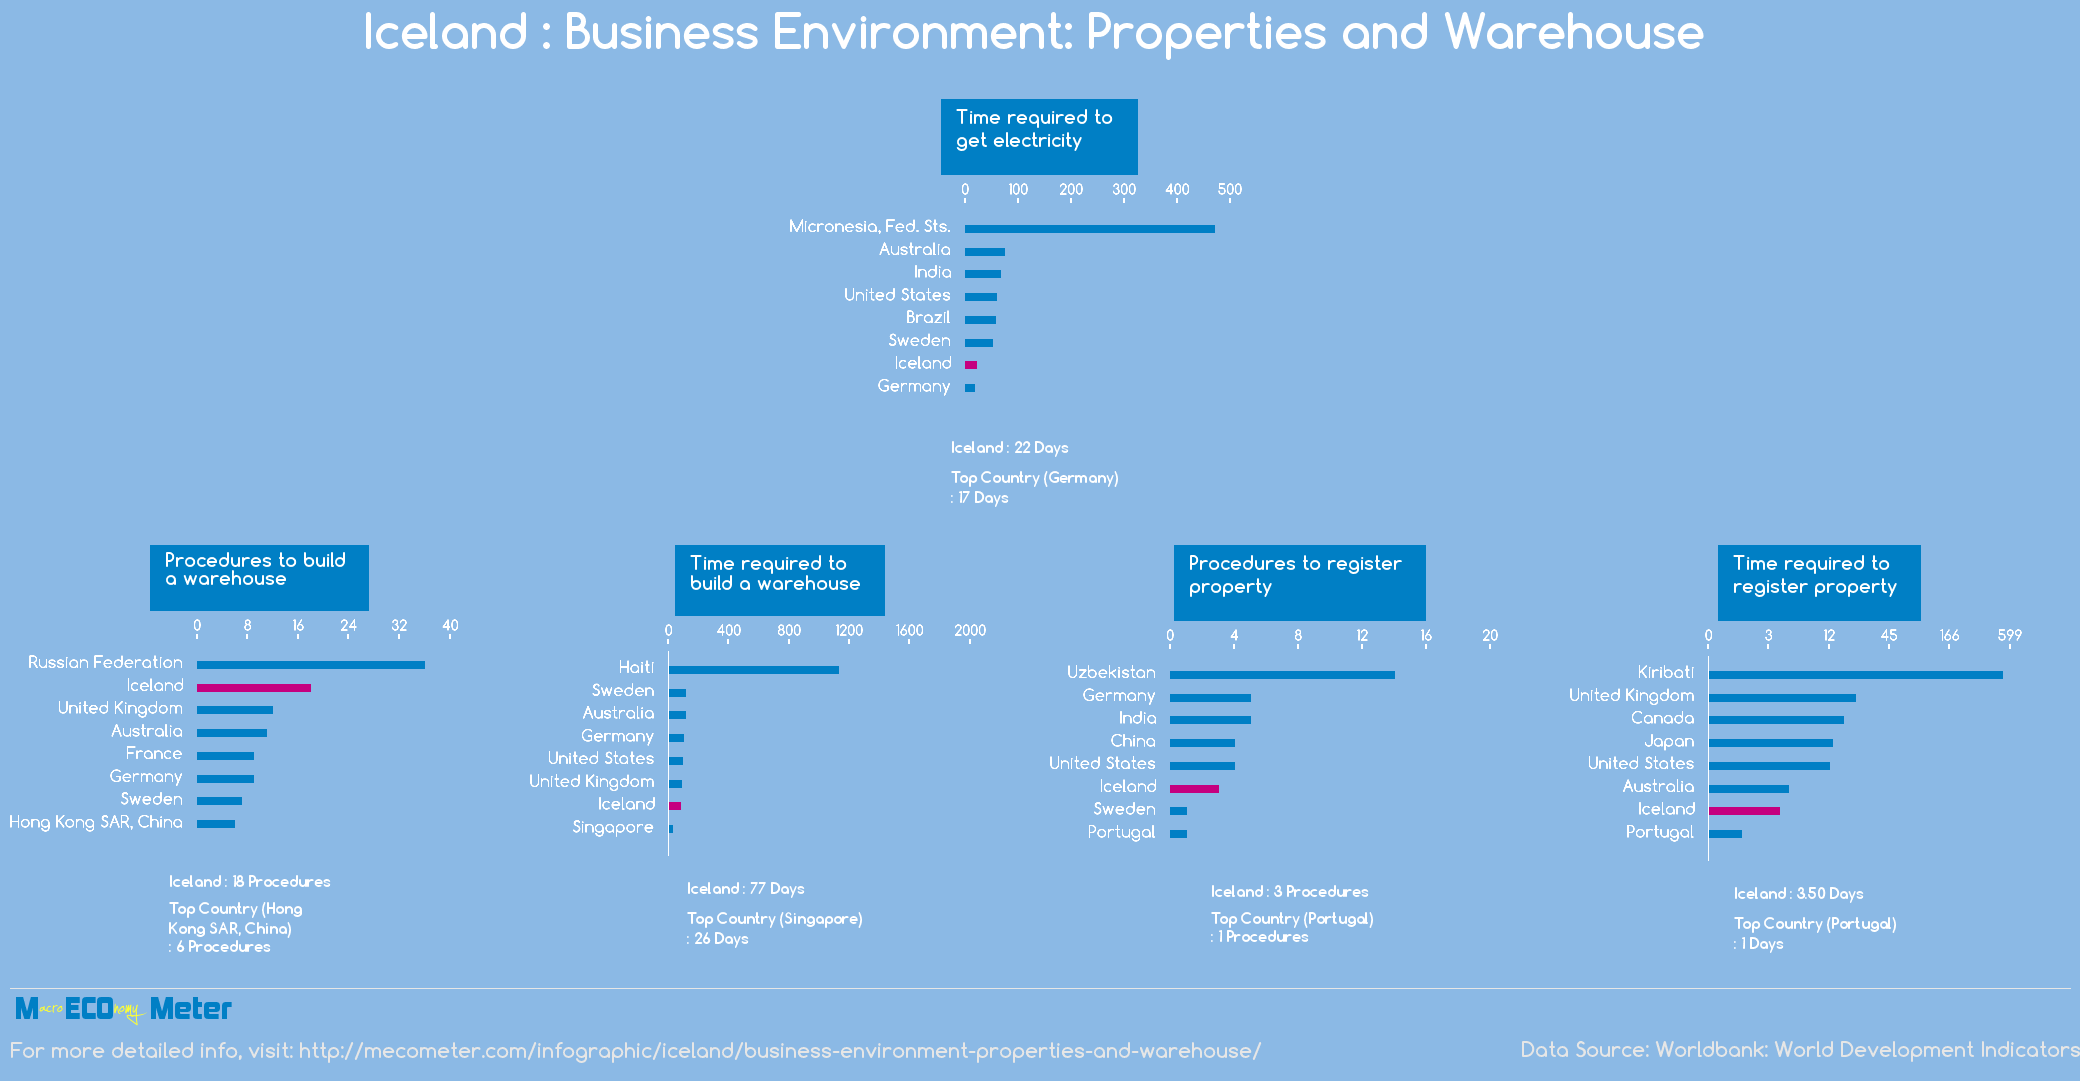 Iceland : Business Environment: Properties and Warehouse